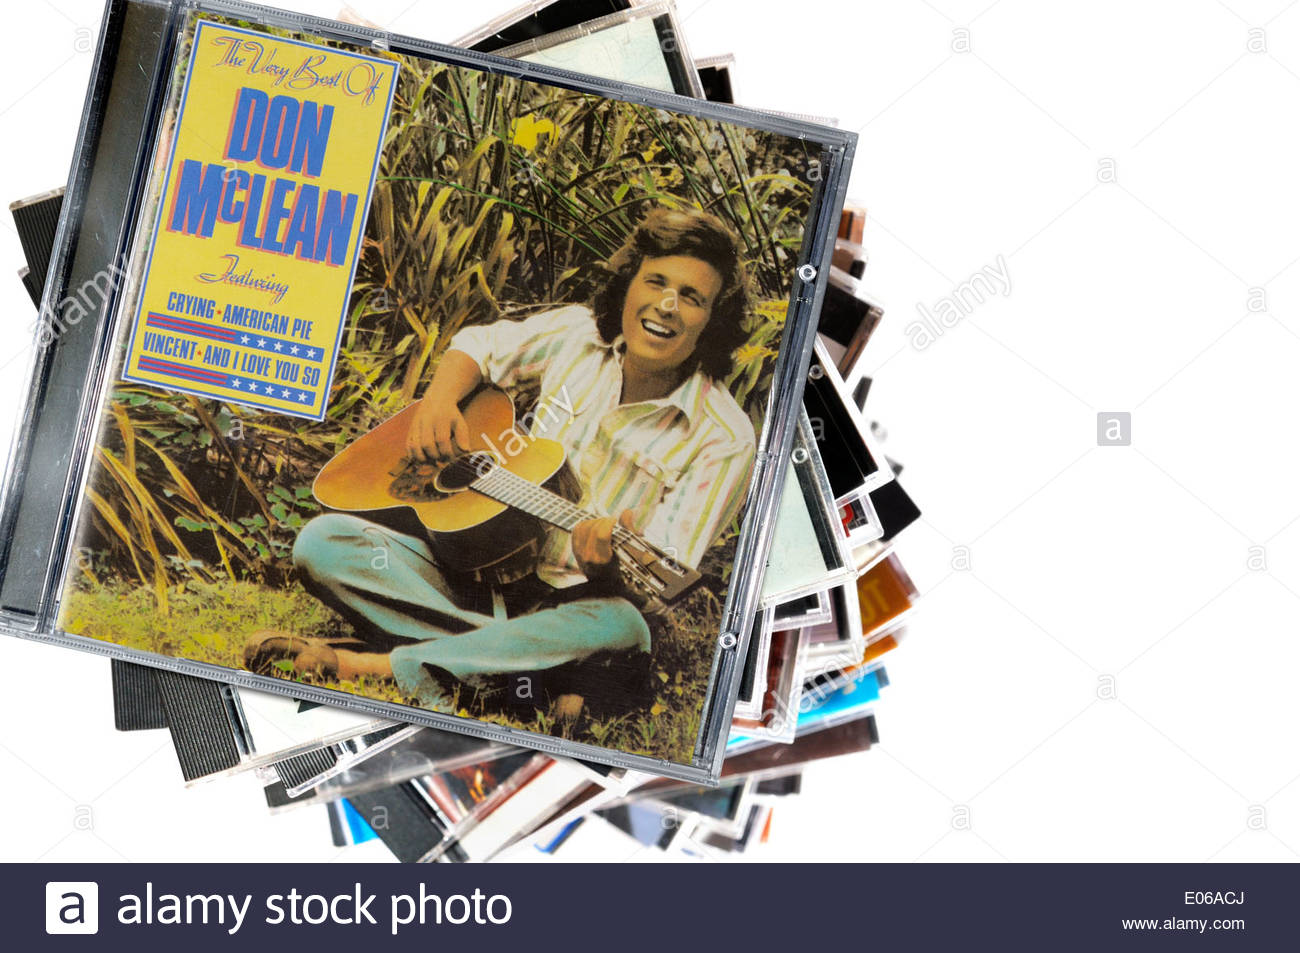 The Very Best Of Don Mclean Stock Photos & The Very Best Of Don